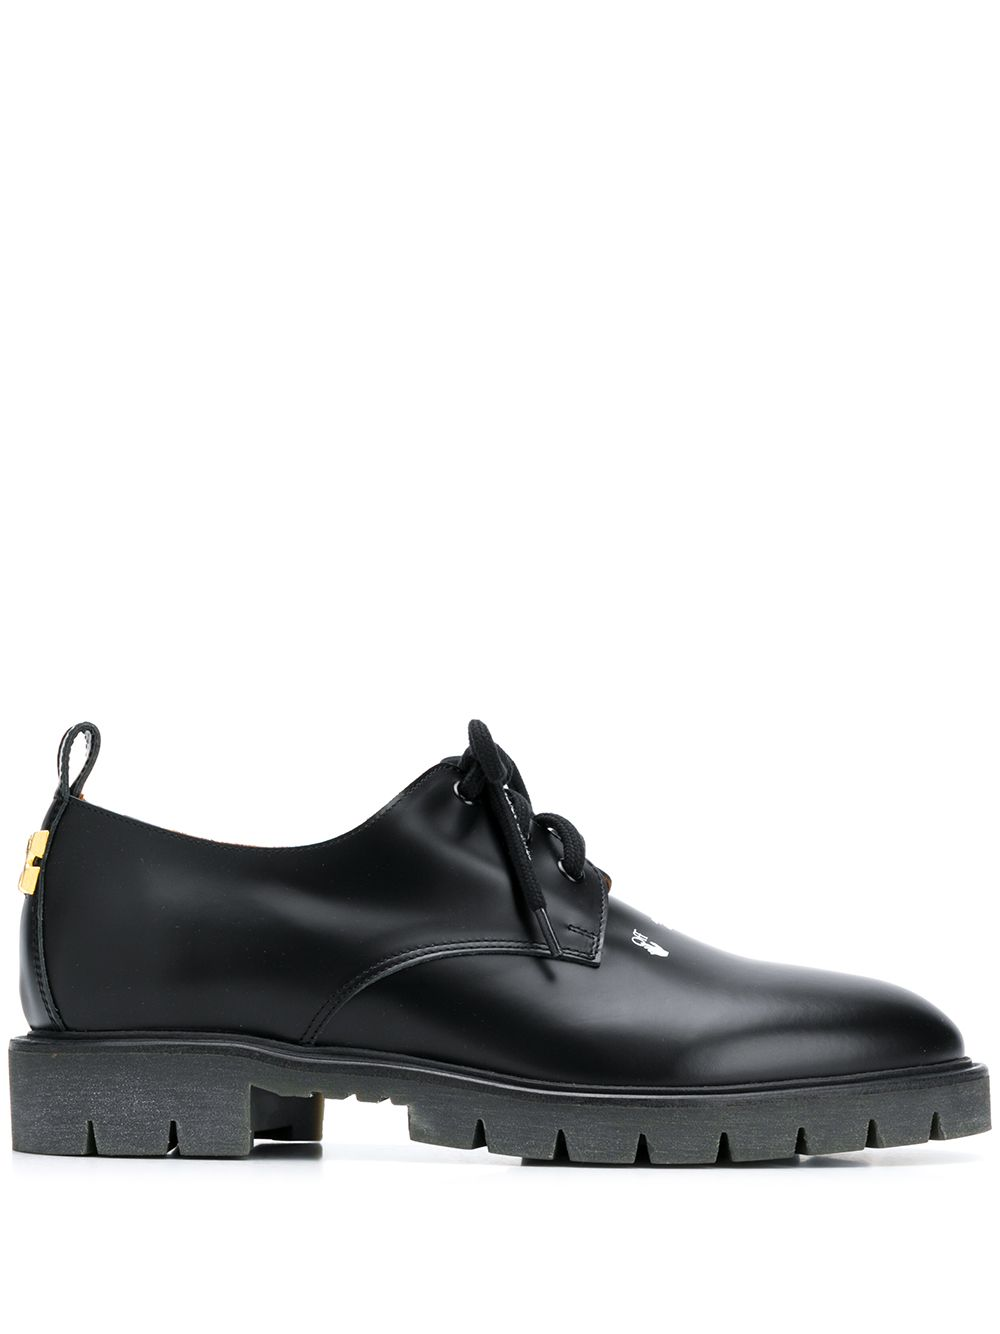 Derby Cross Leather Shoes